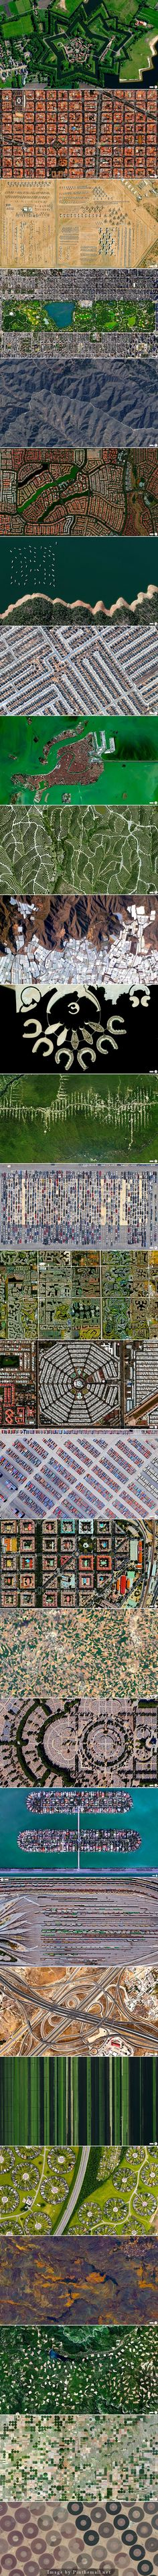 Aerial views - So sad how humanity has crowded into horrible box shapes